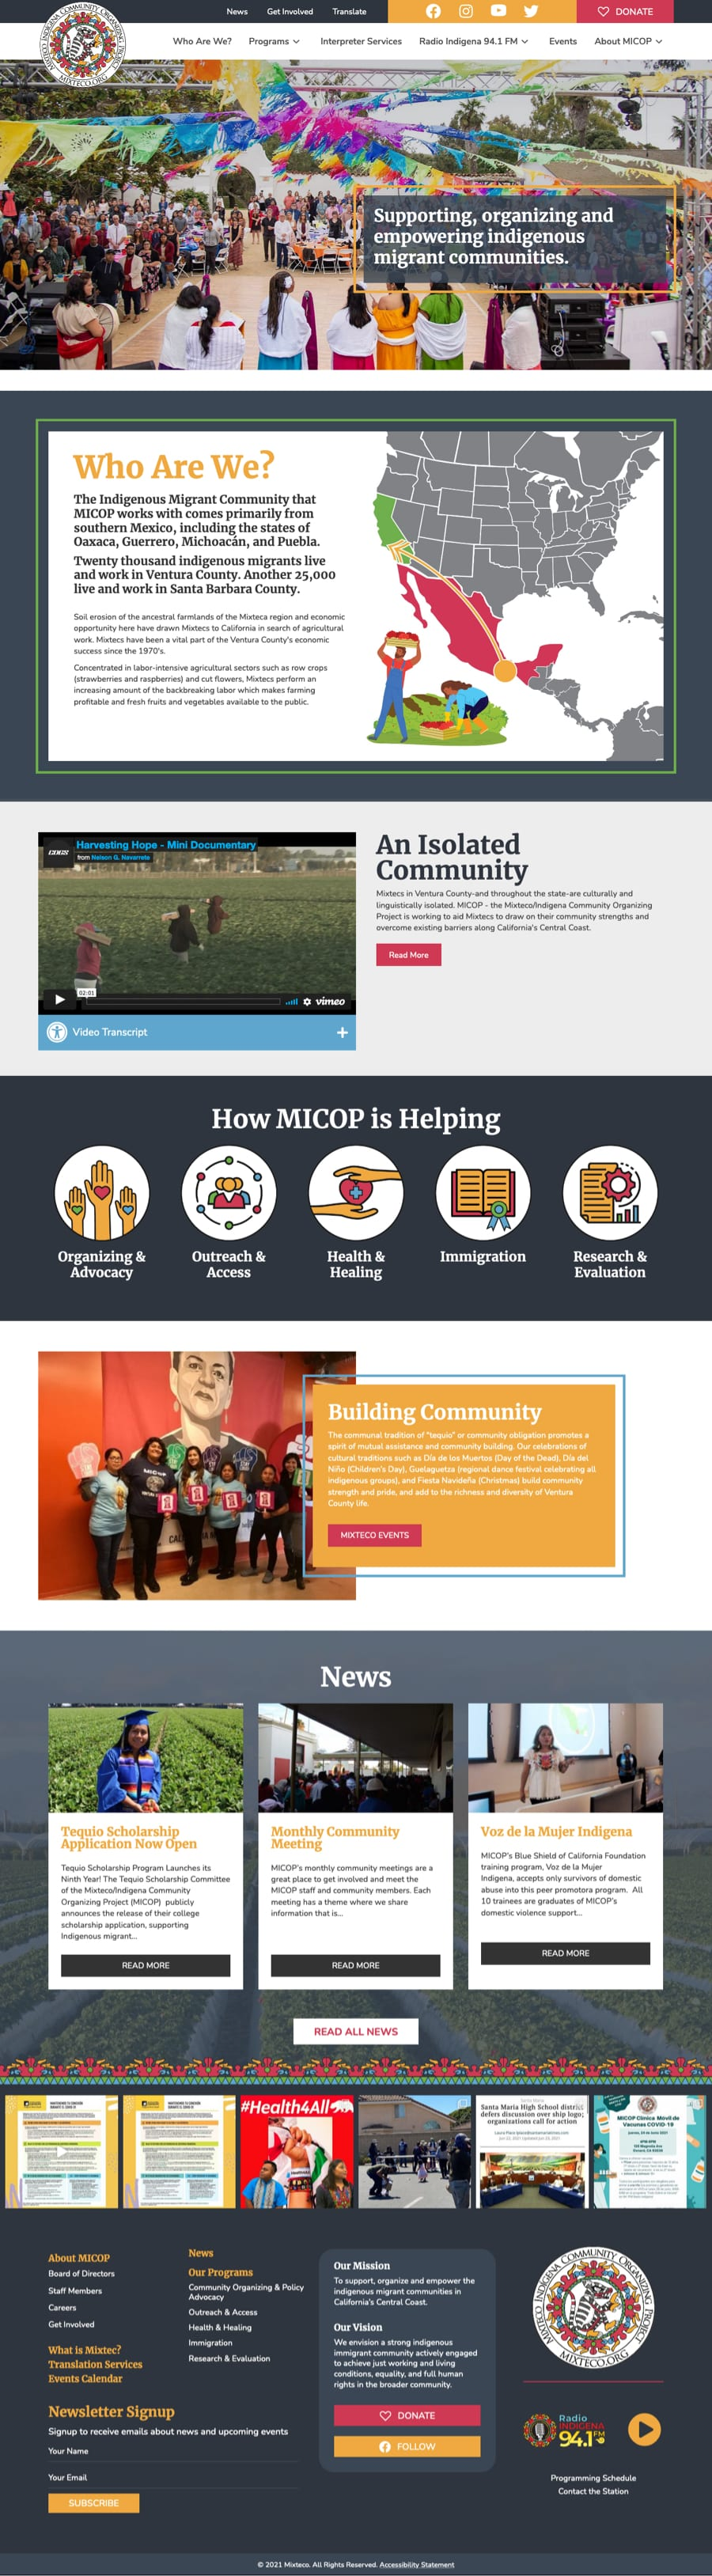 Fullpage screenshot of mixteco.org's home page